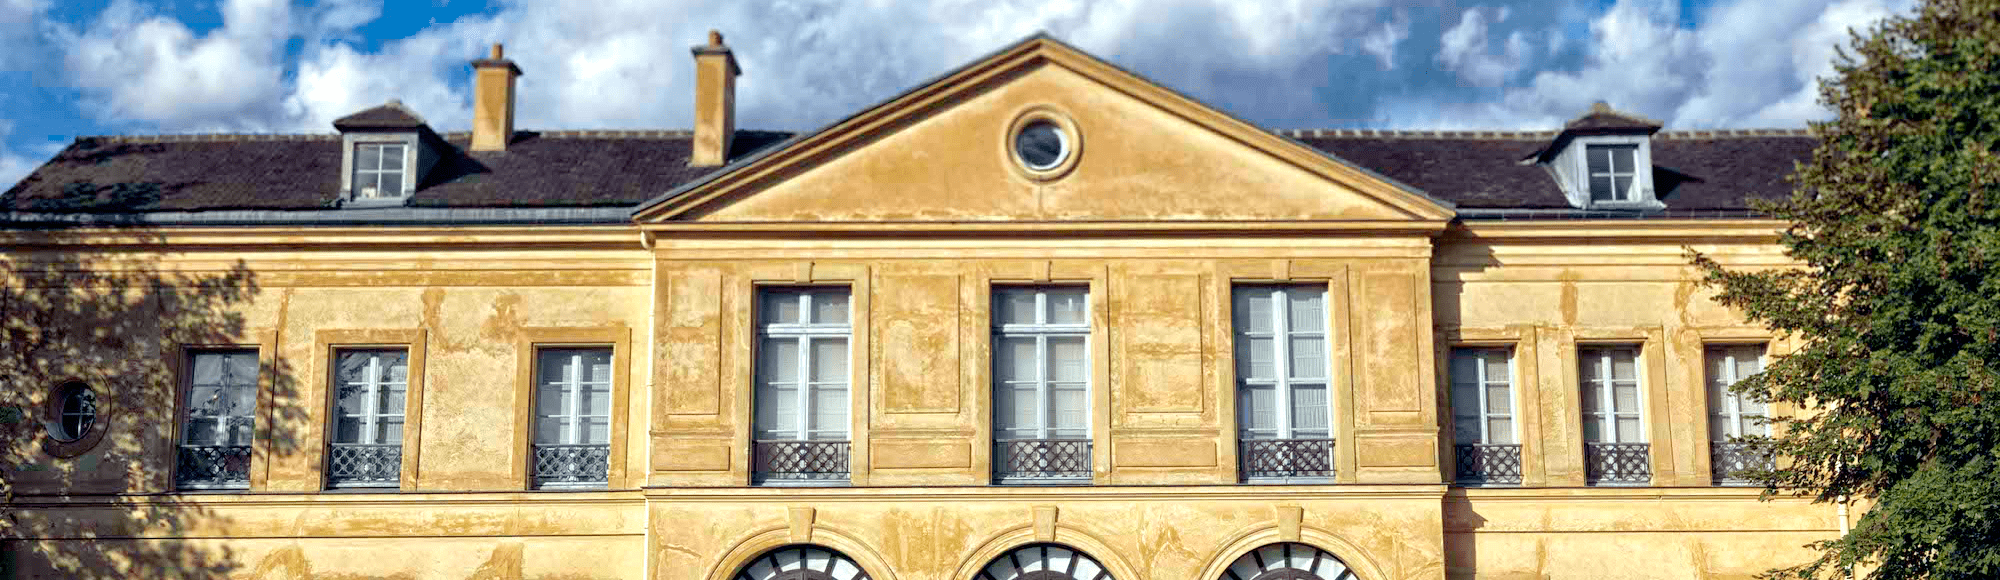 Taxirechner maisons-alfort